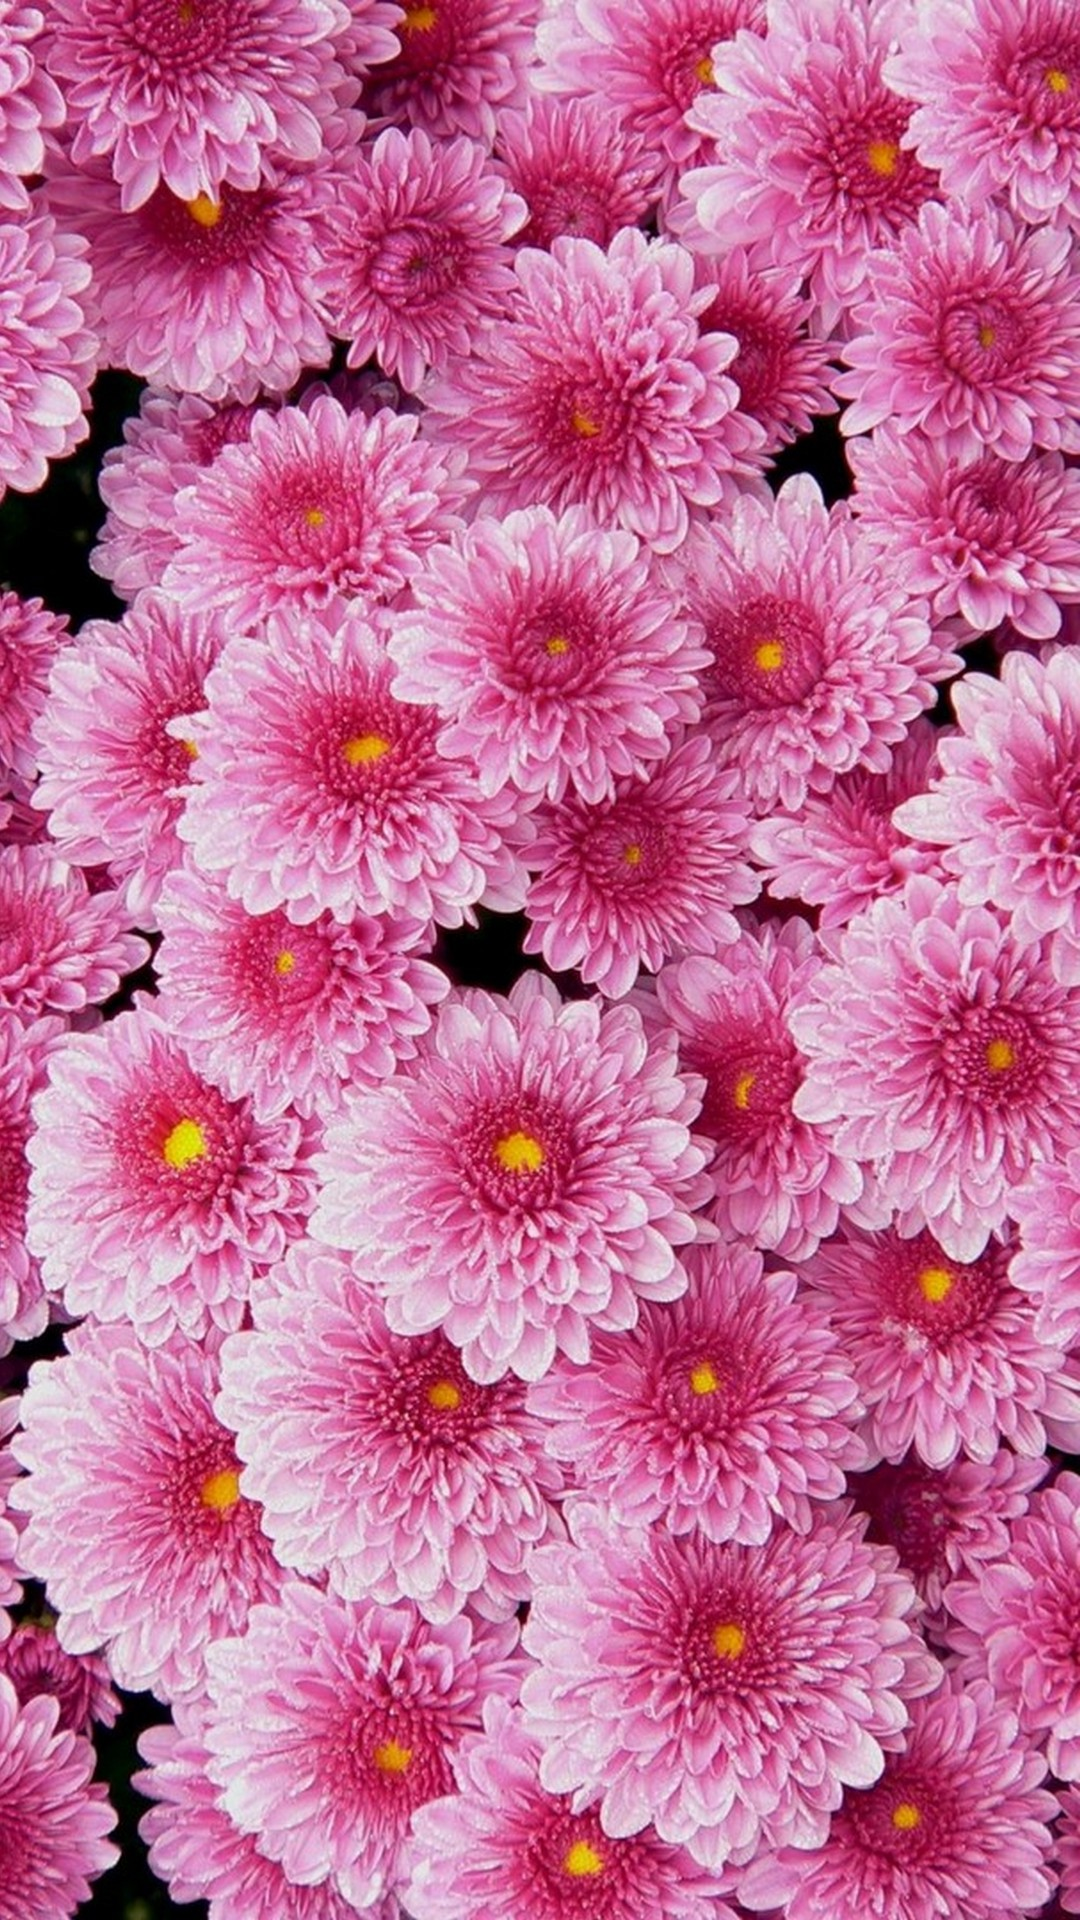 Pink Flower Wallpaper For Phone 2020 Cute Wallpapers